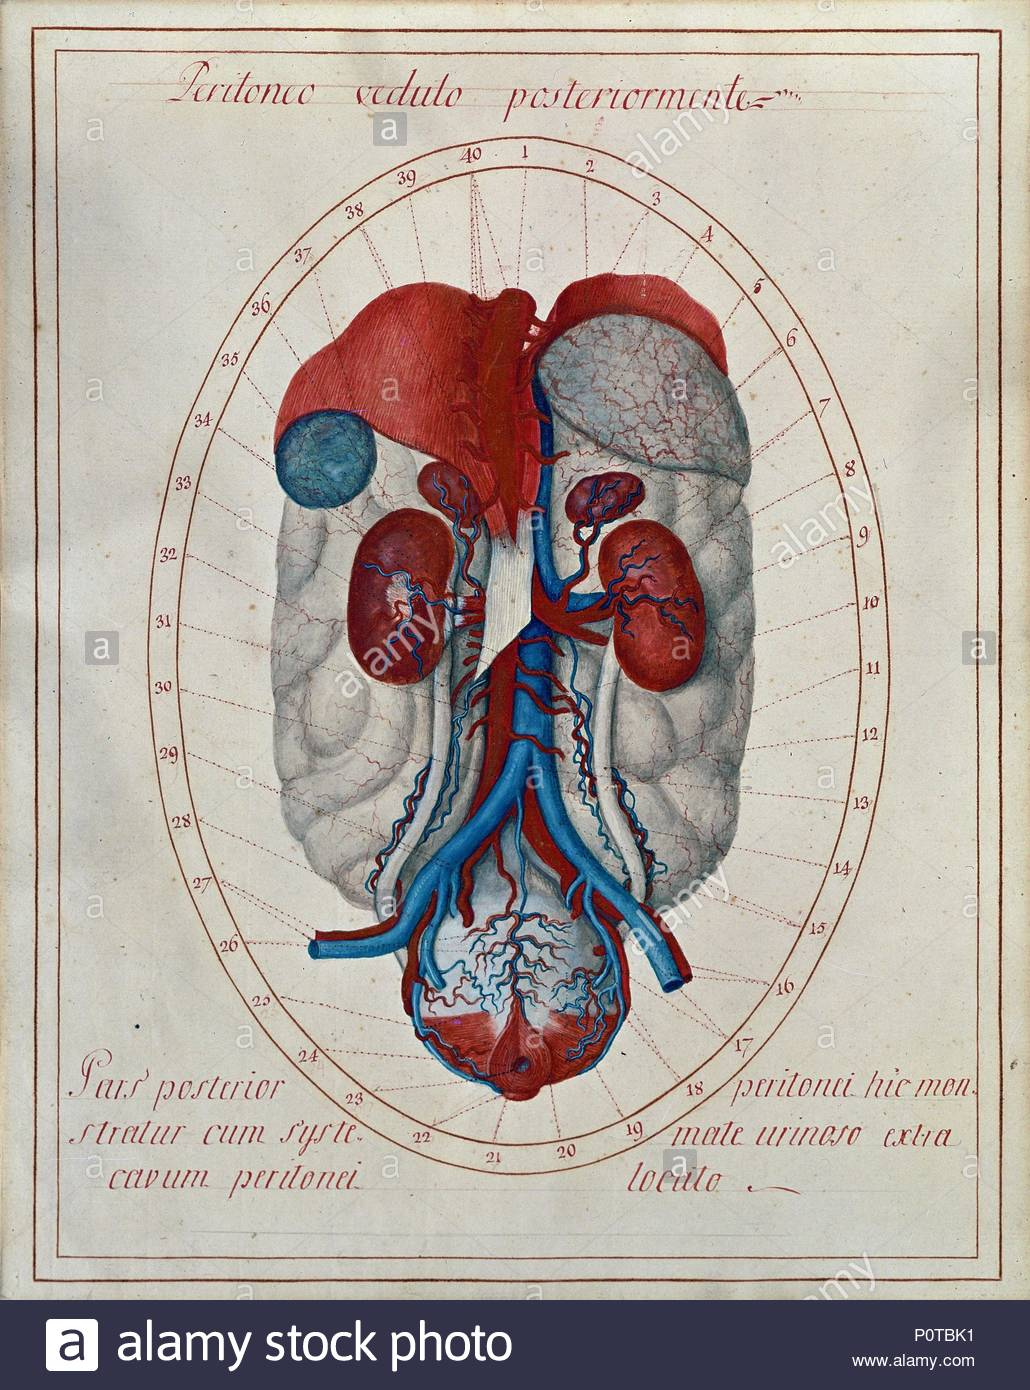 Retroperitonic Organs Diaphragm Spleen Kidneys And Their Blood